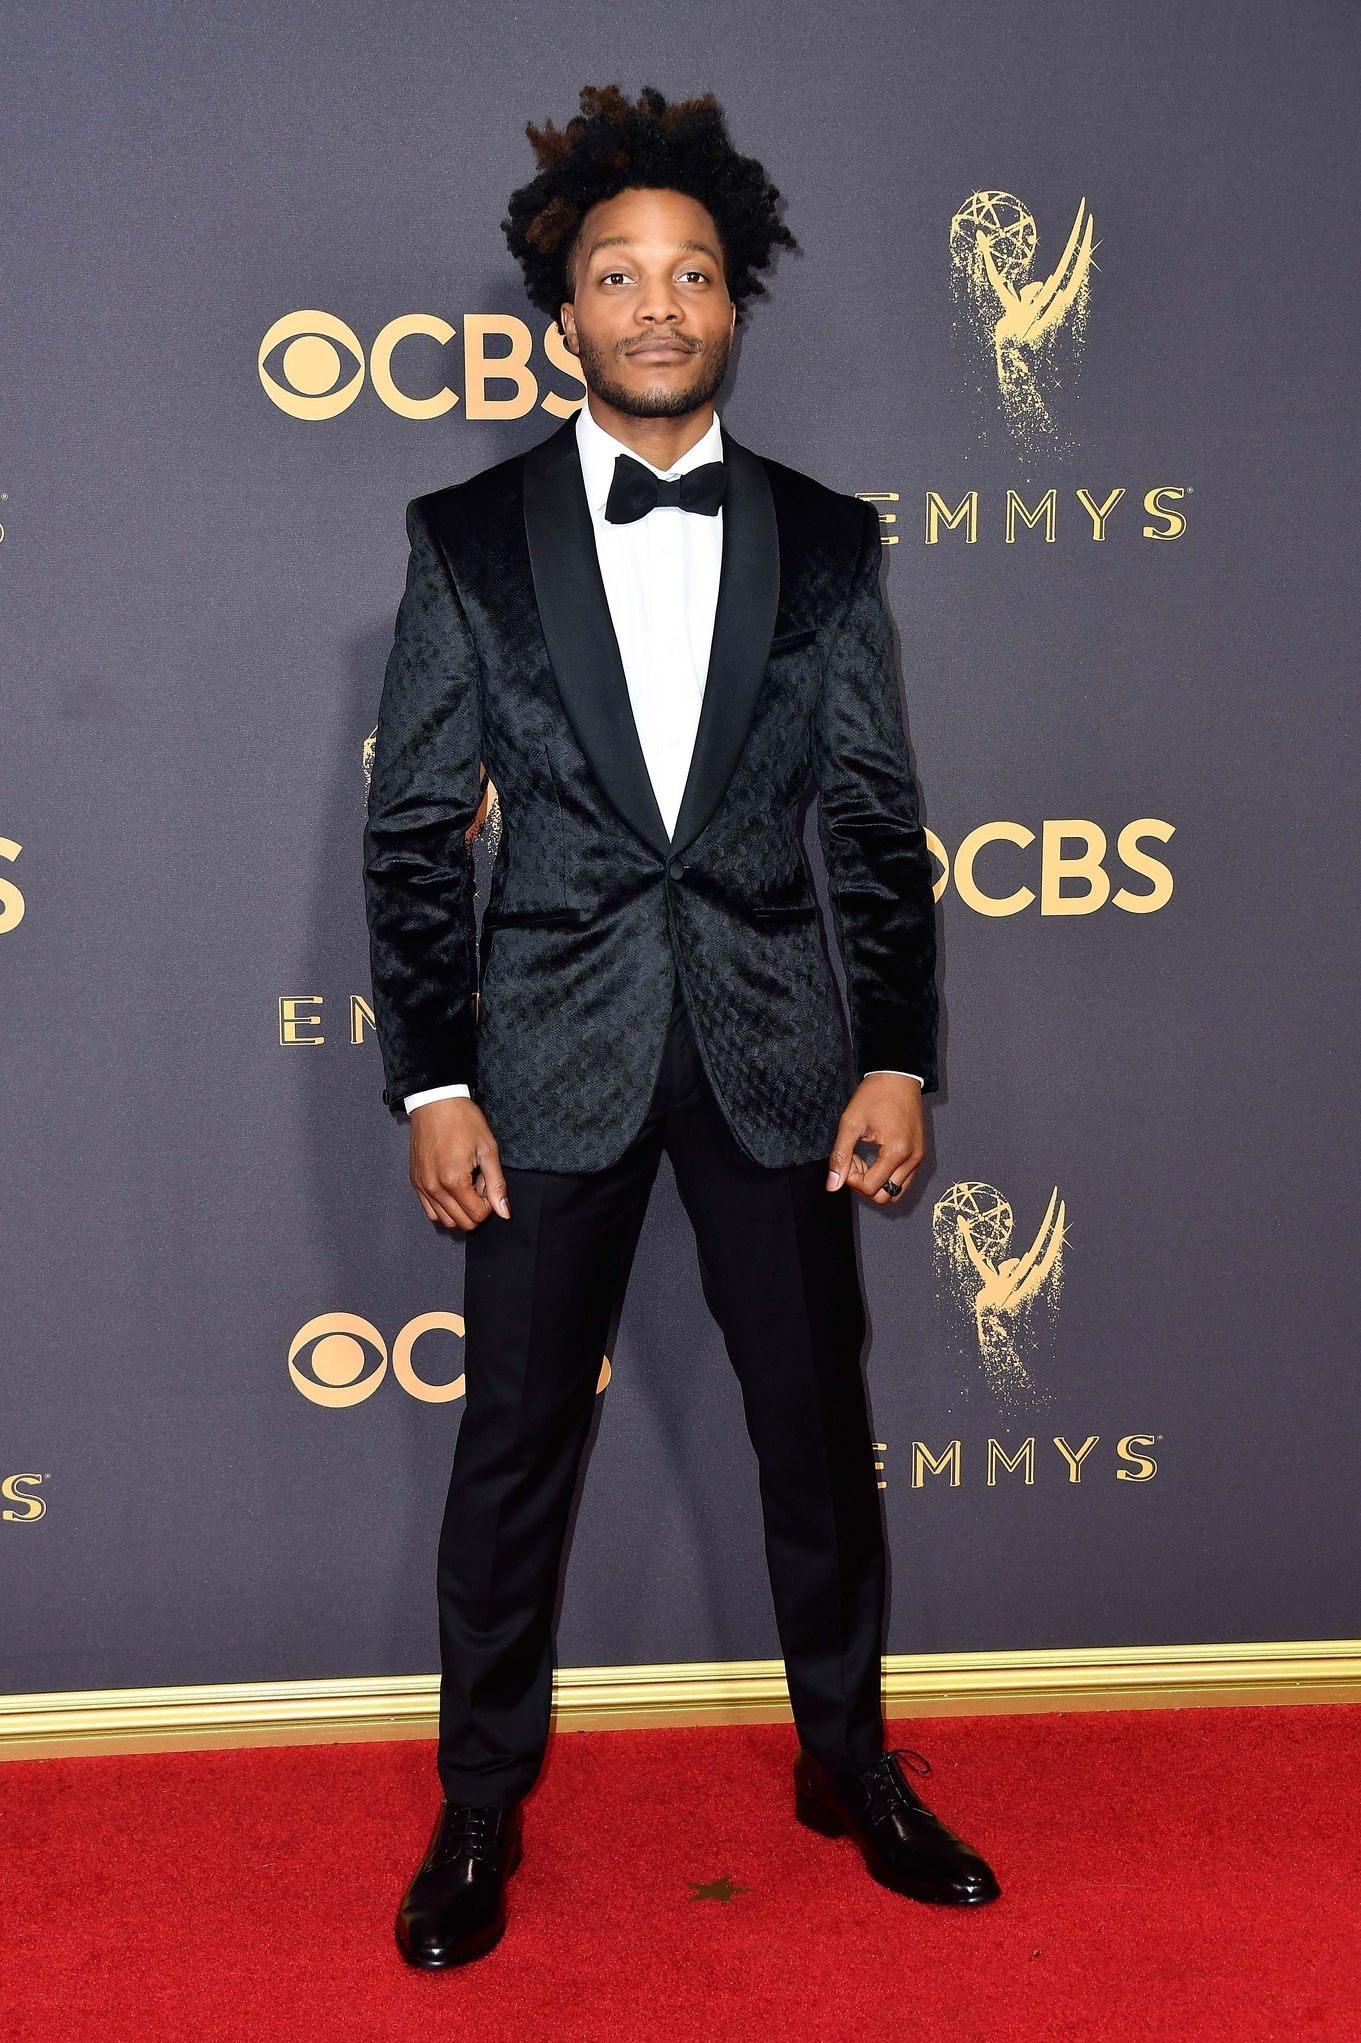 JERMAINE FOWLER In Kenneth Cole at the Emmys